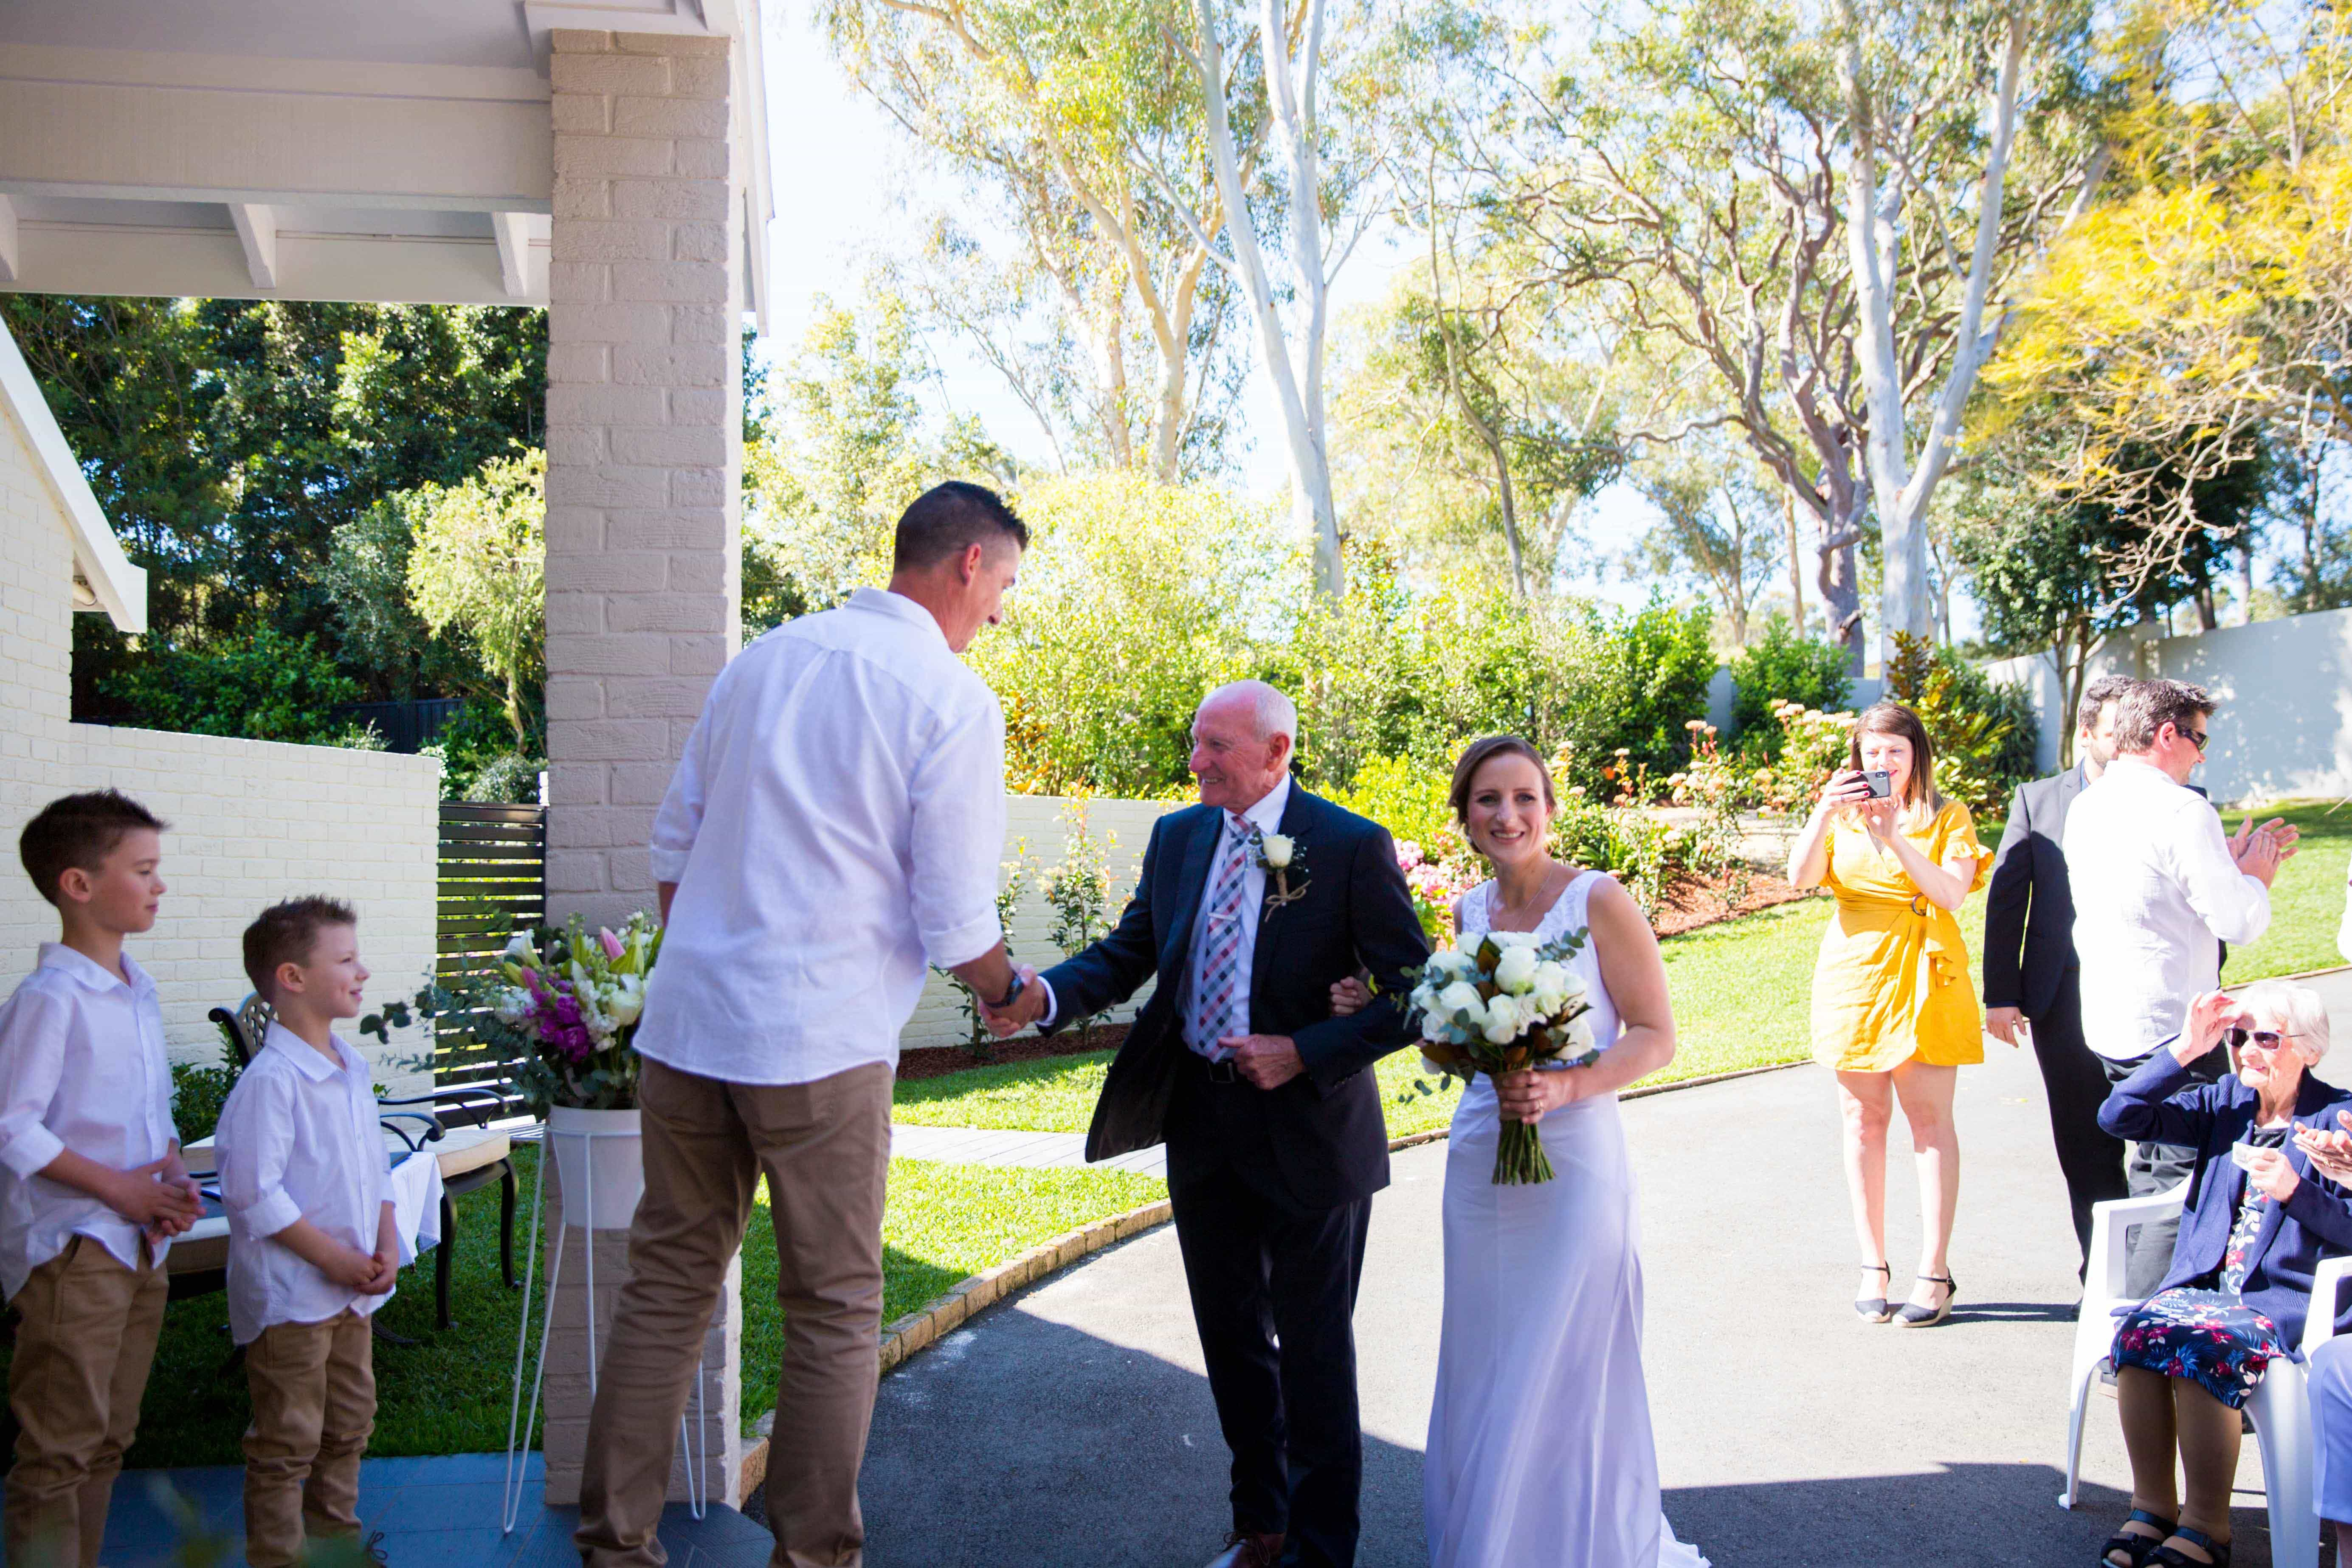 walking down the aisle Marriage ceremony with bride and groom at Whitebridge NSW